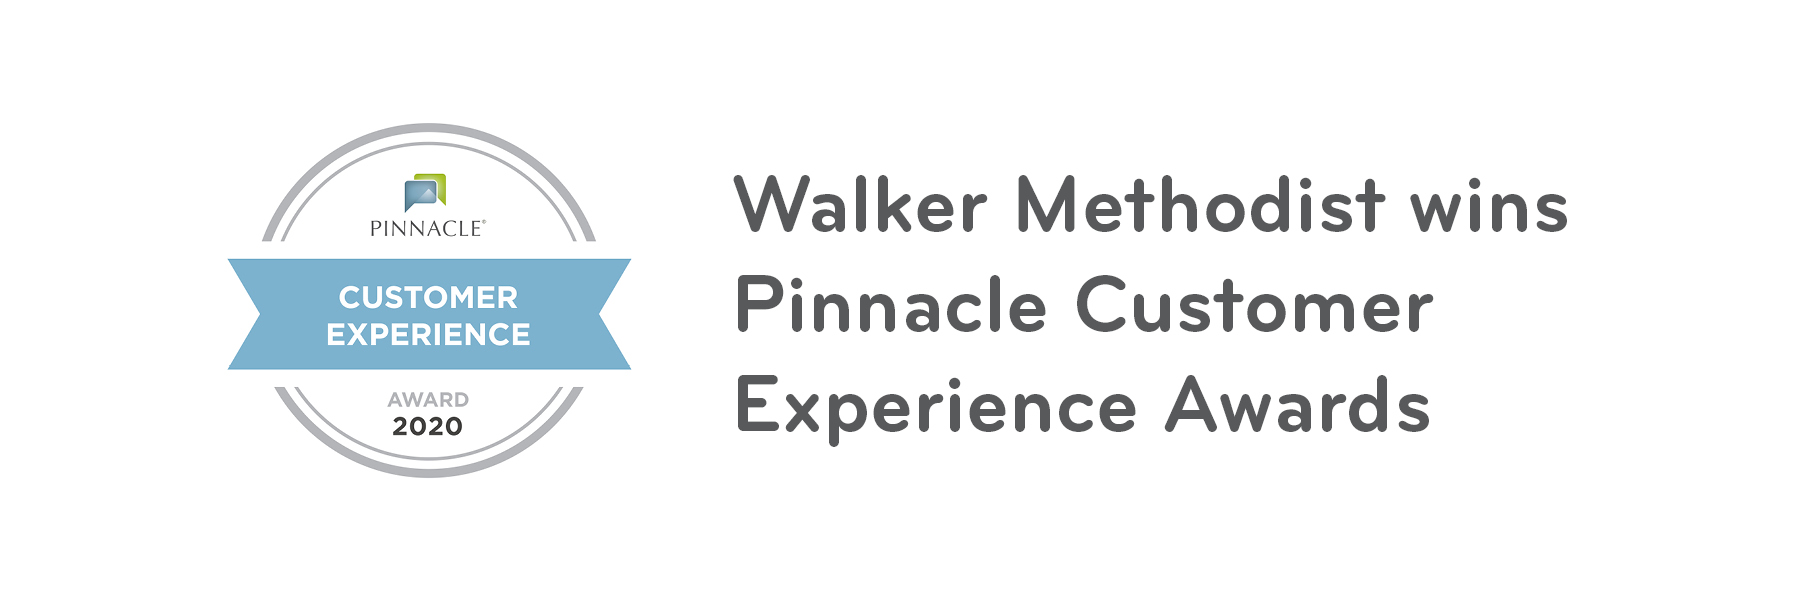 Walker Methodist communities receive Pinnacle Customer Experience awards